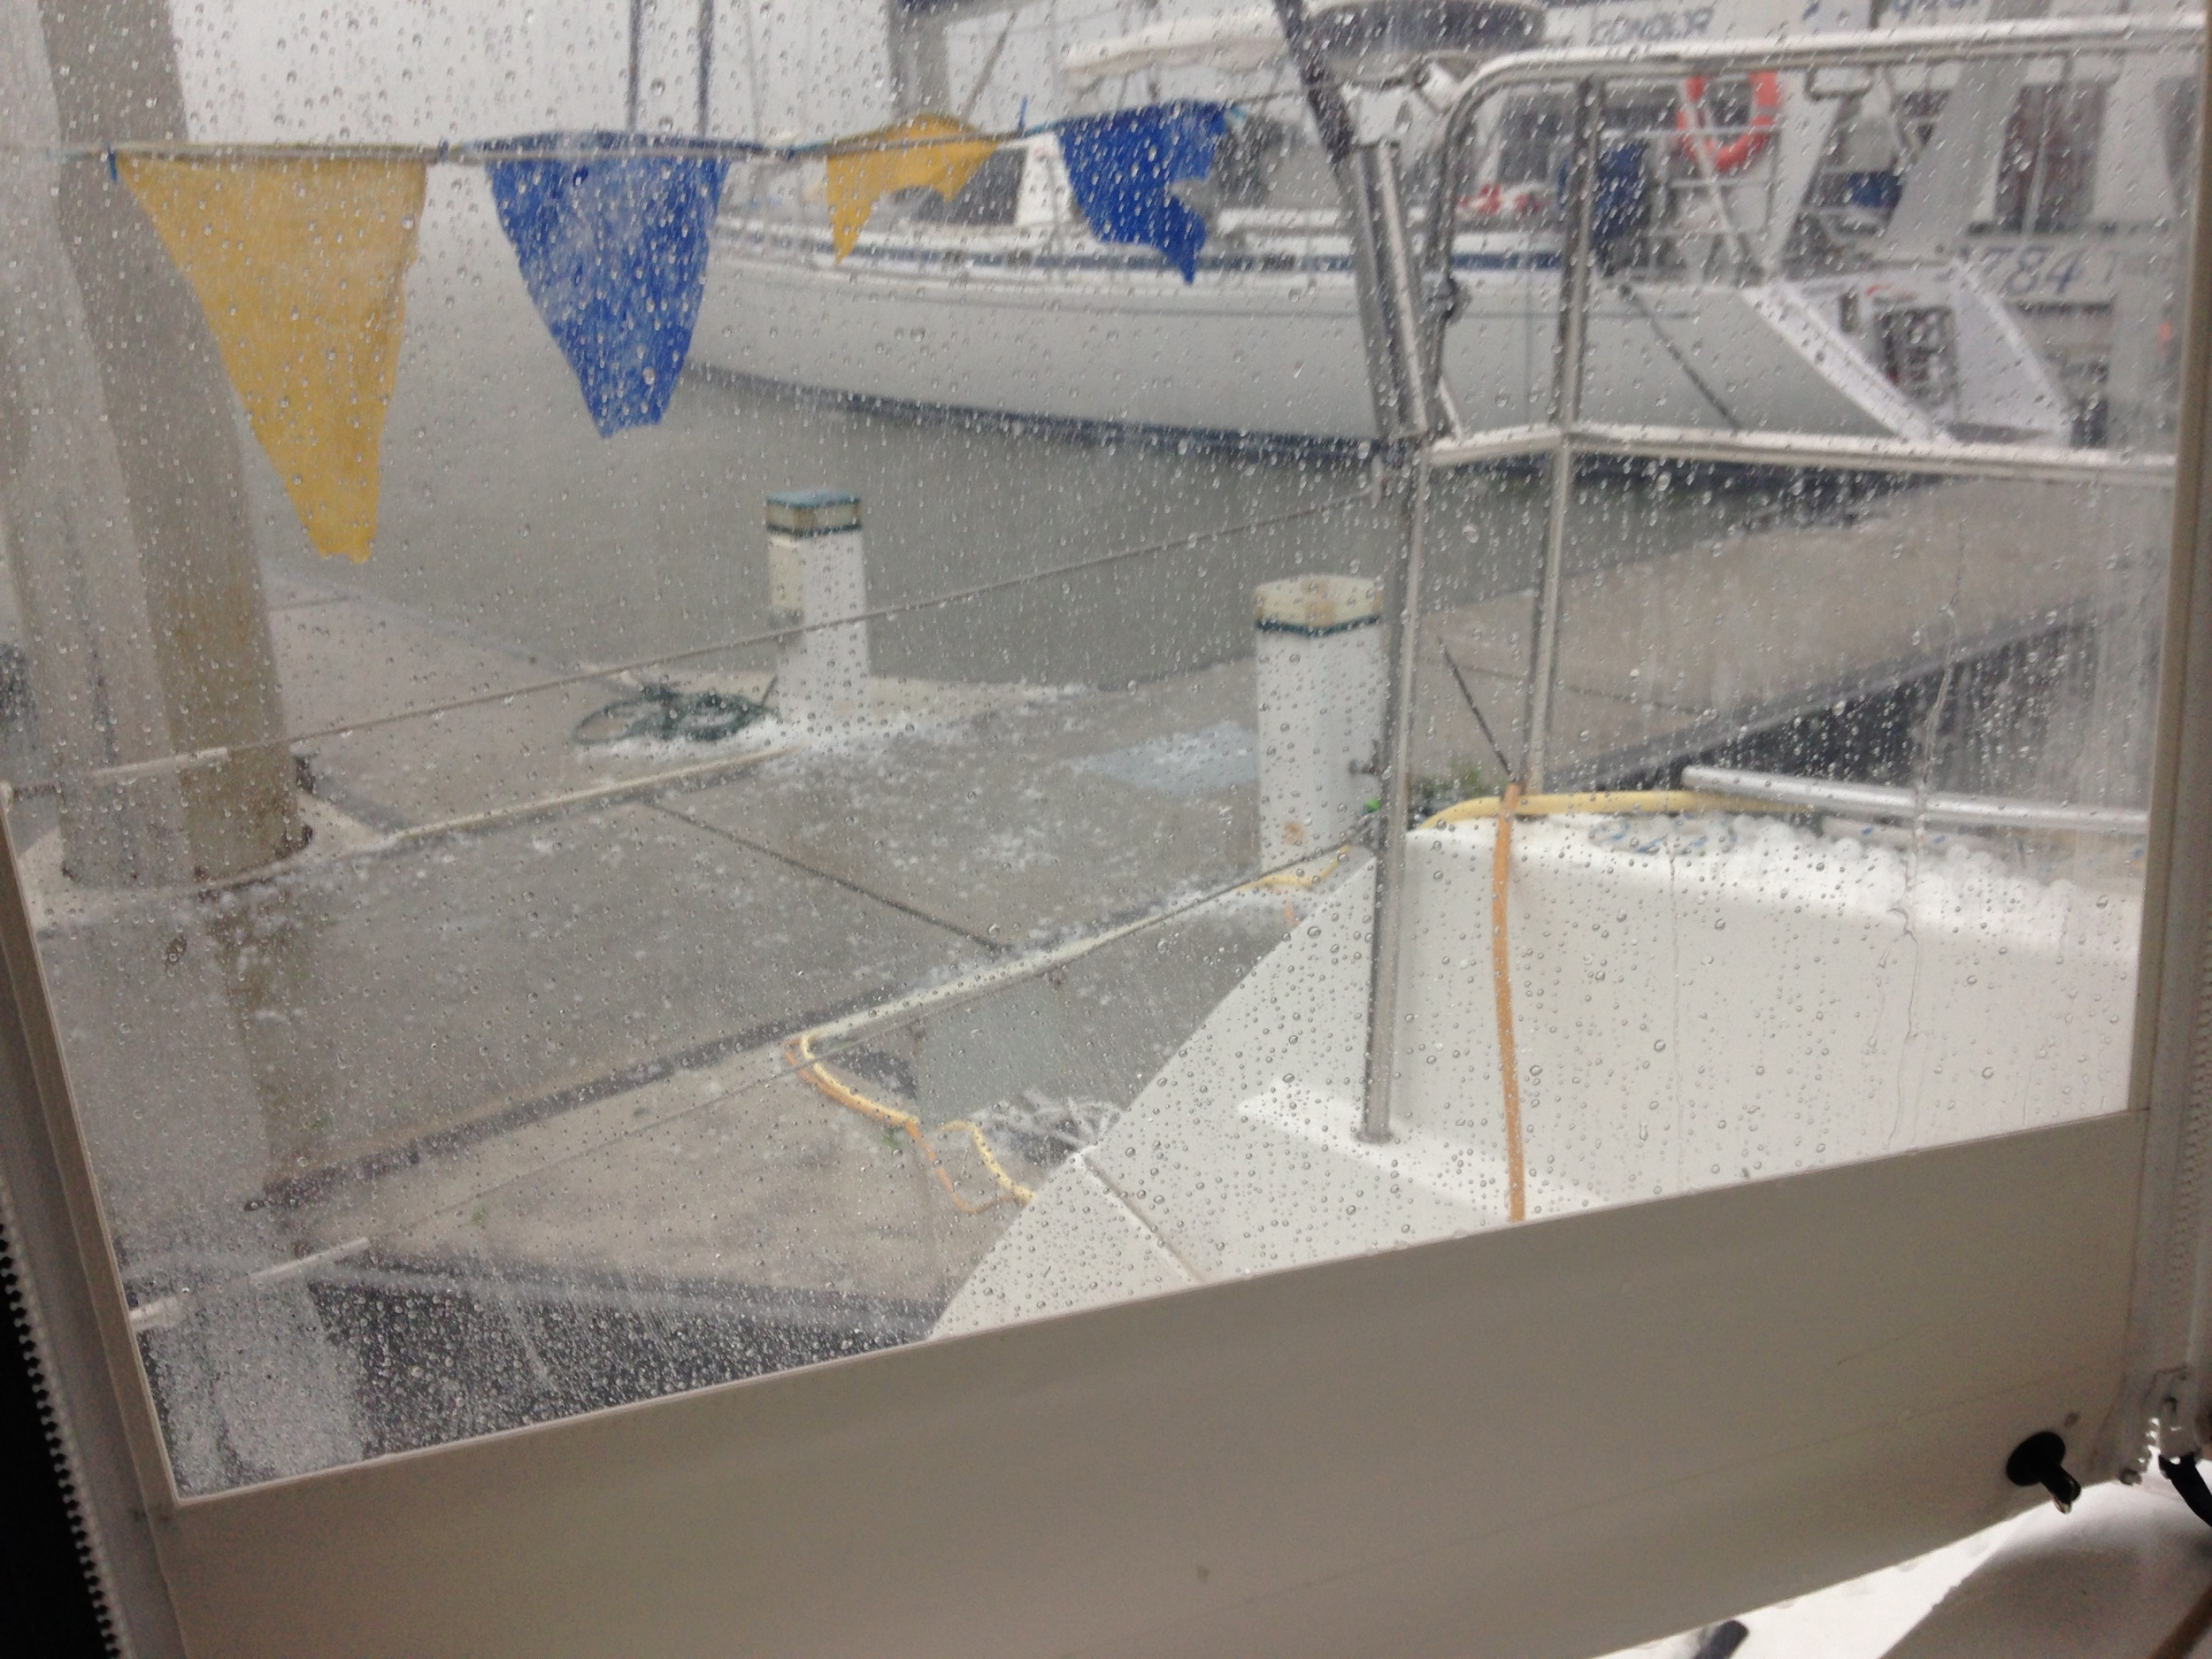 hail on dock.JPG